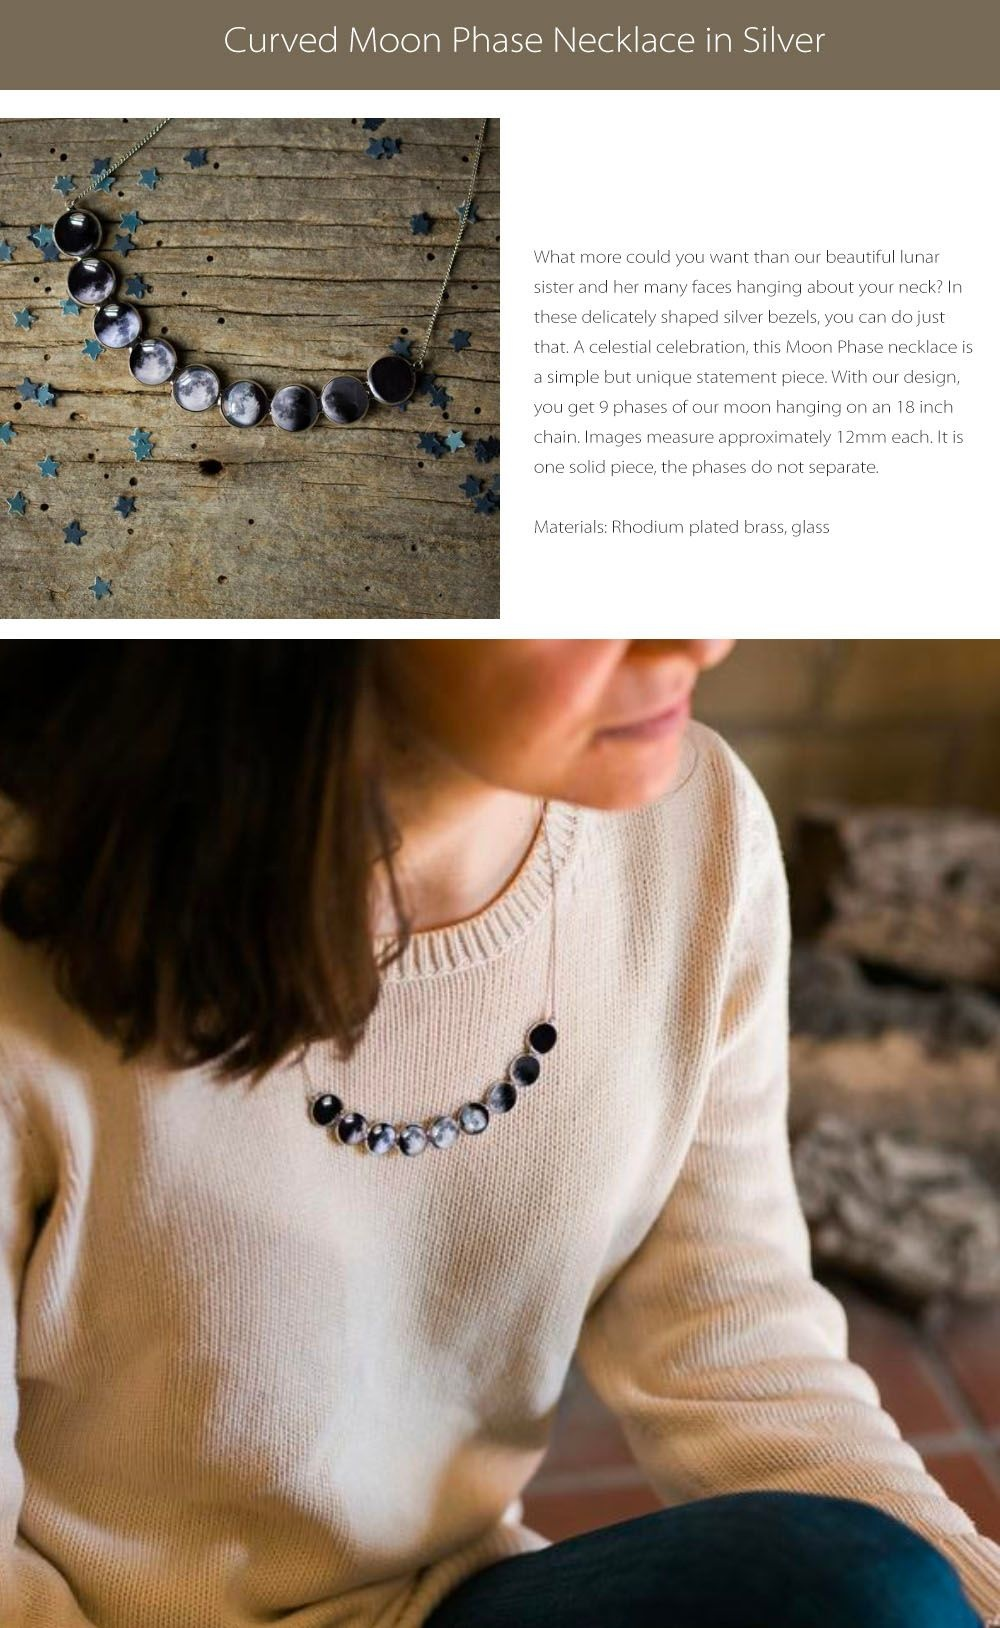 Curved Moon Phase Necklace Lunar Love